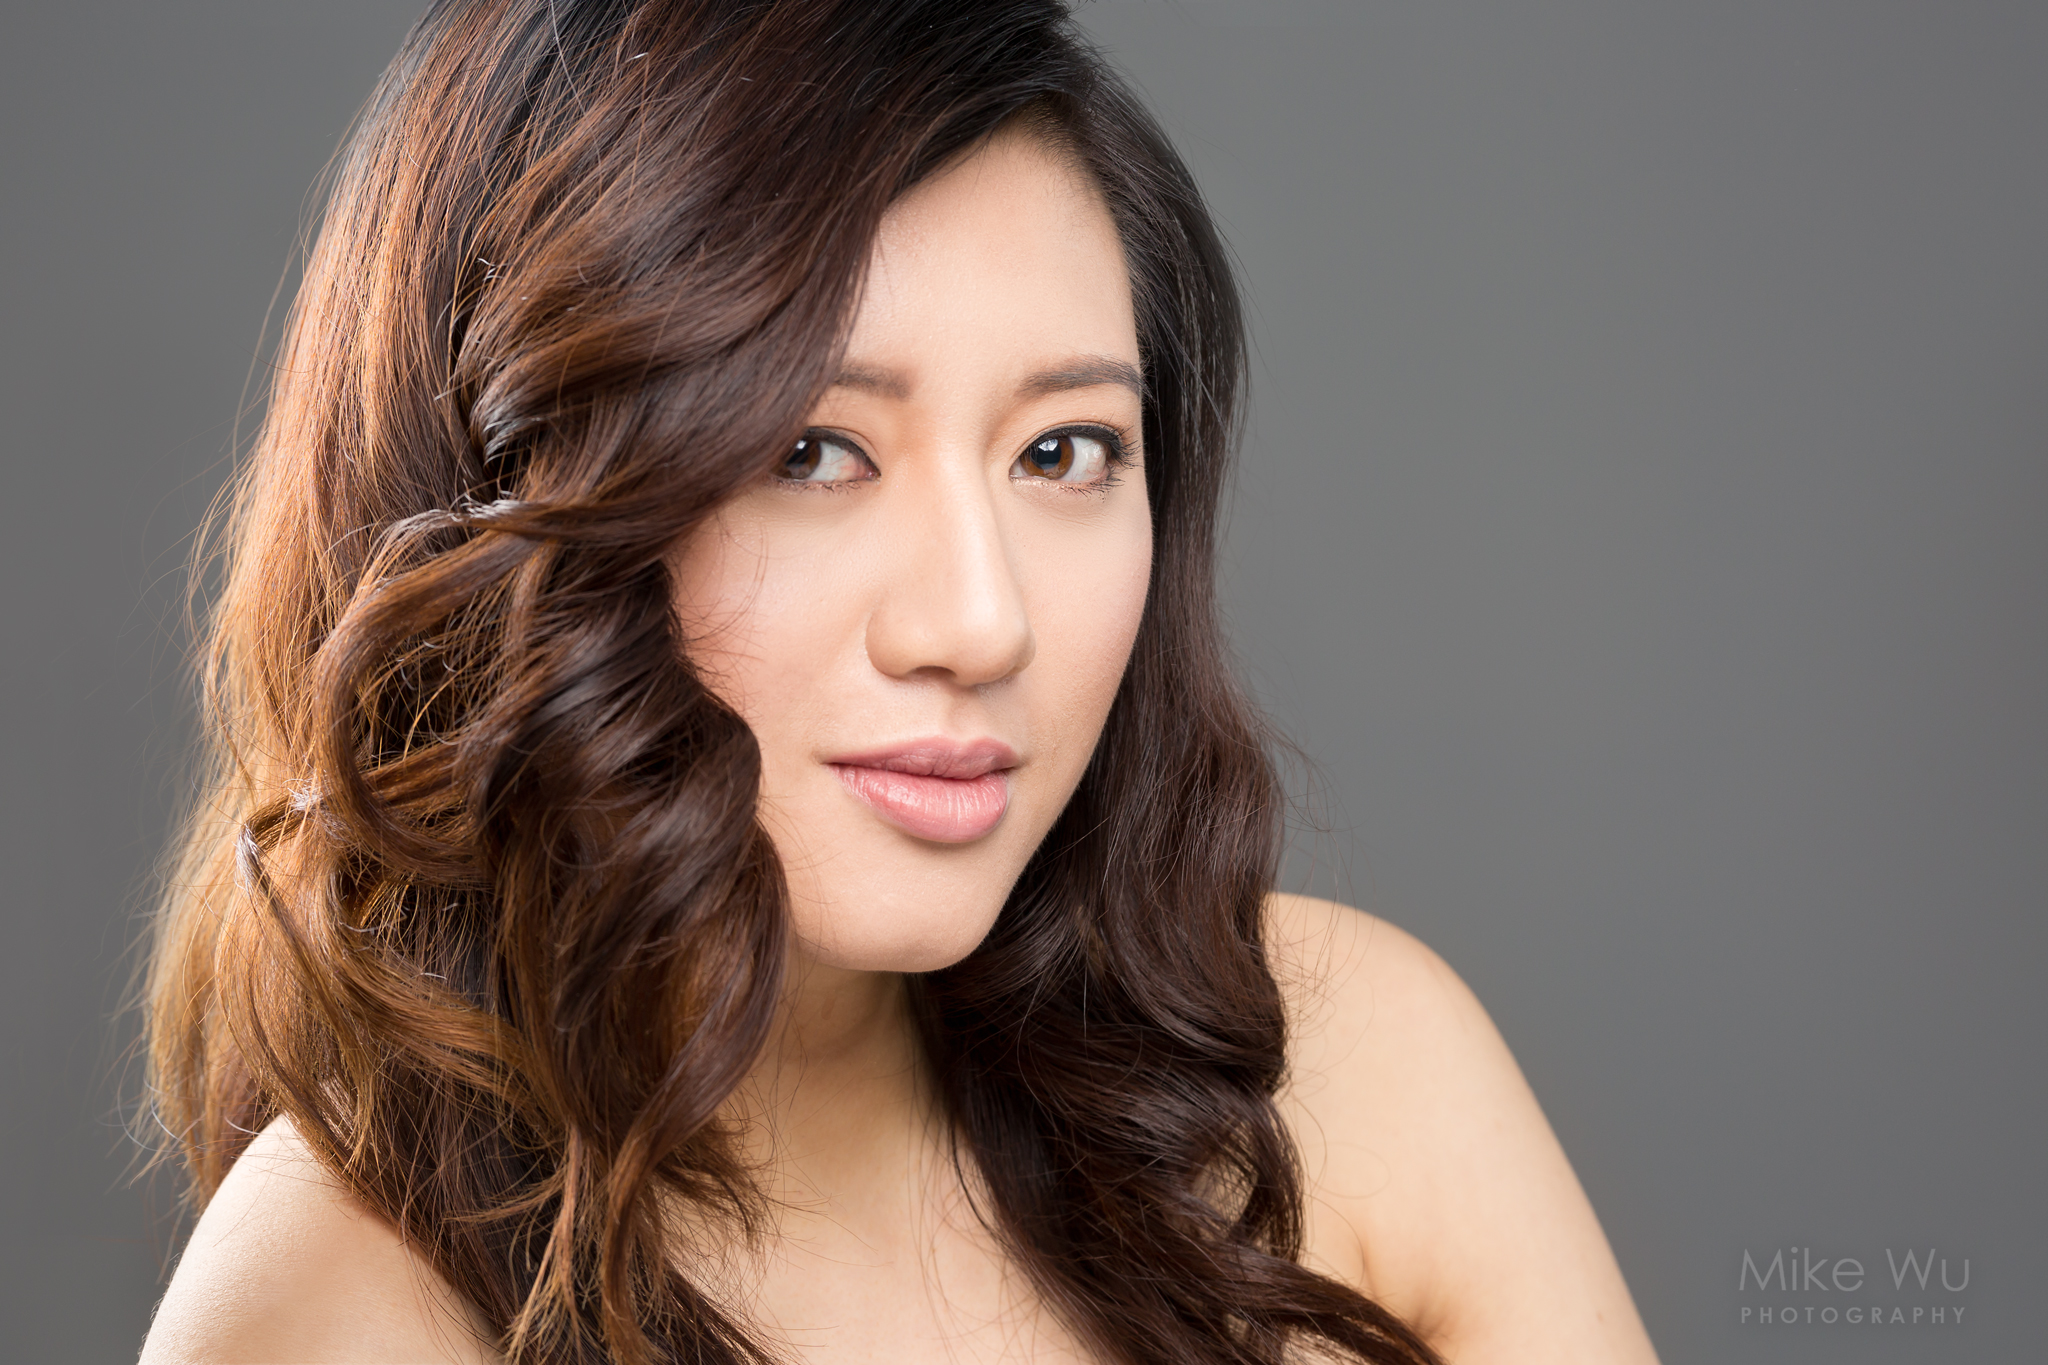 vancouver portrait photographer mike wu indoor studio headshot chinese asian beautiful clean lovely smile christine